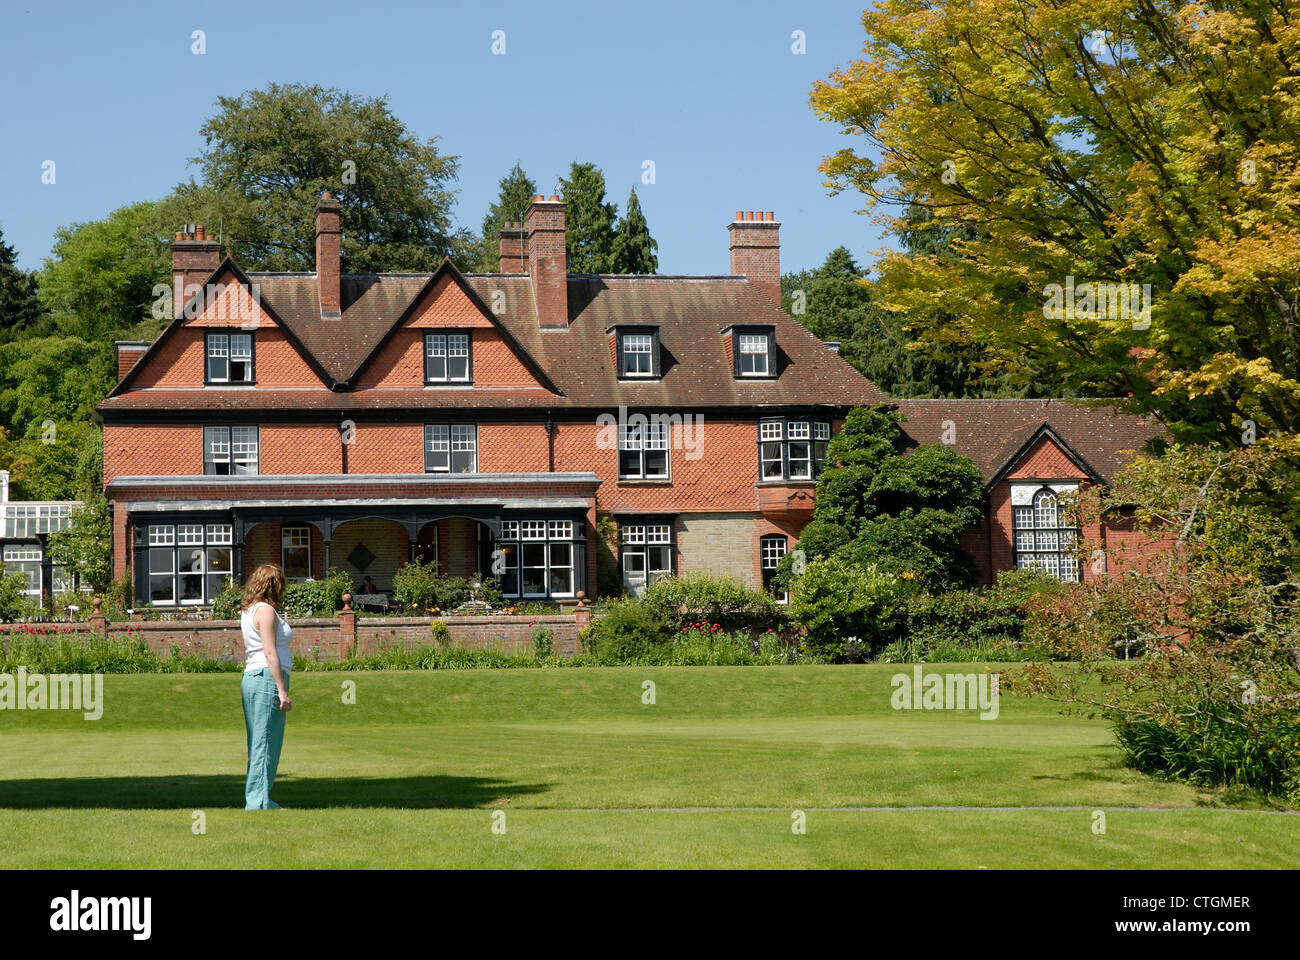 A woman enjoys the view at Hergest Croft Gardens in Kington, Herefordshire. - Stock Image